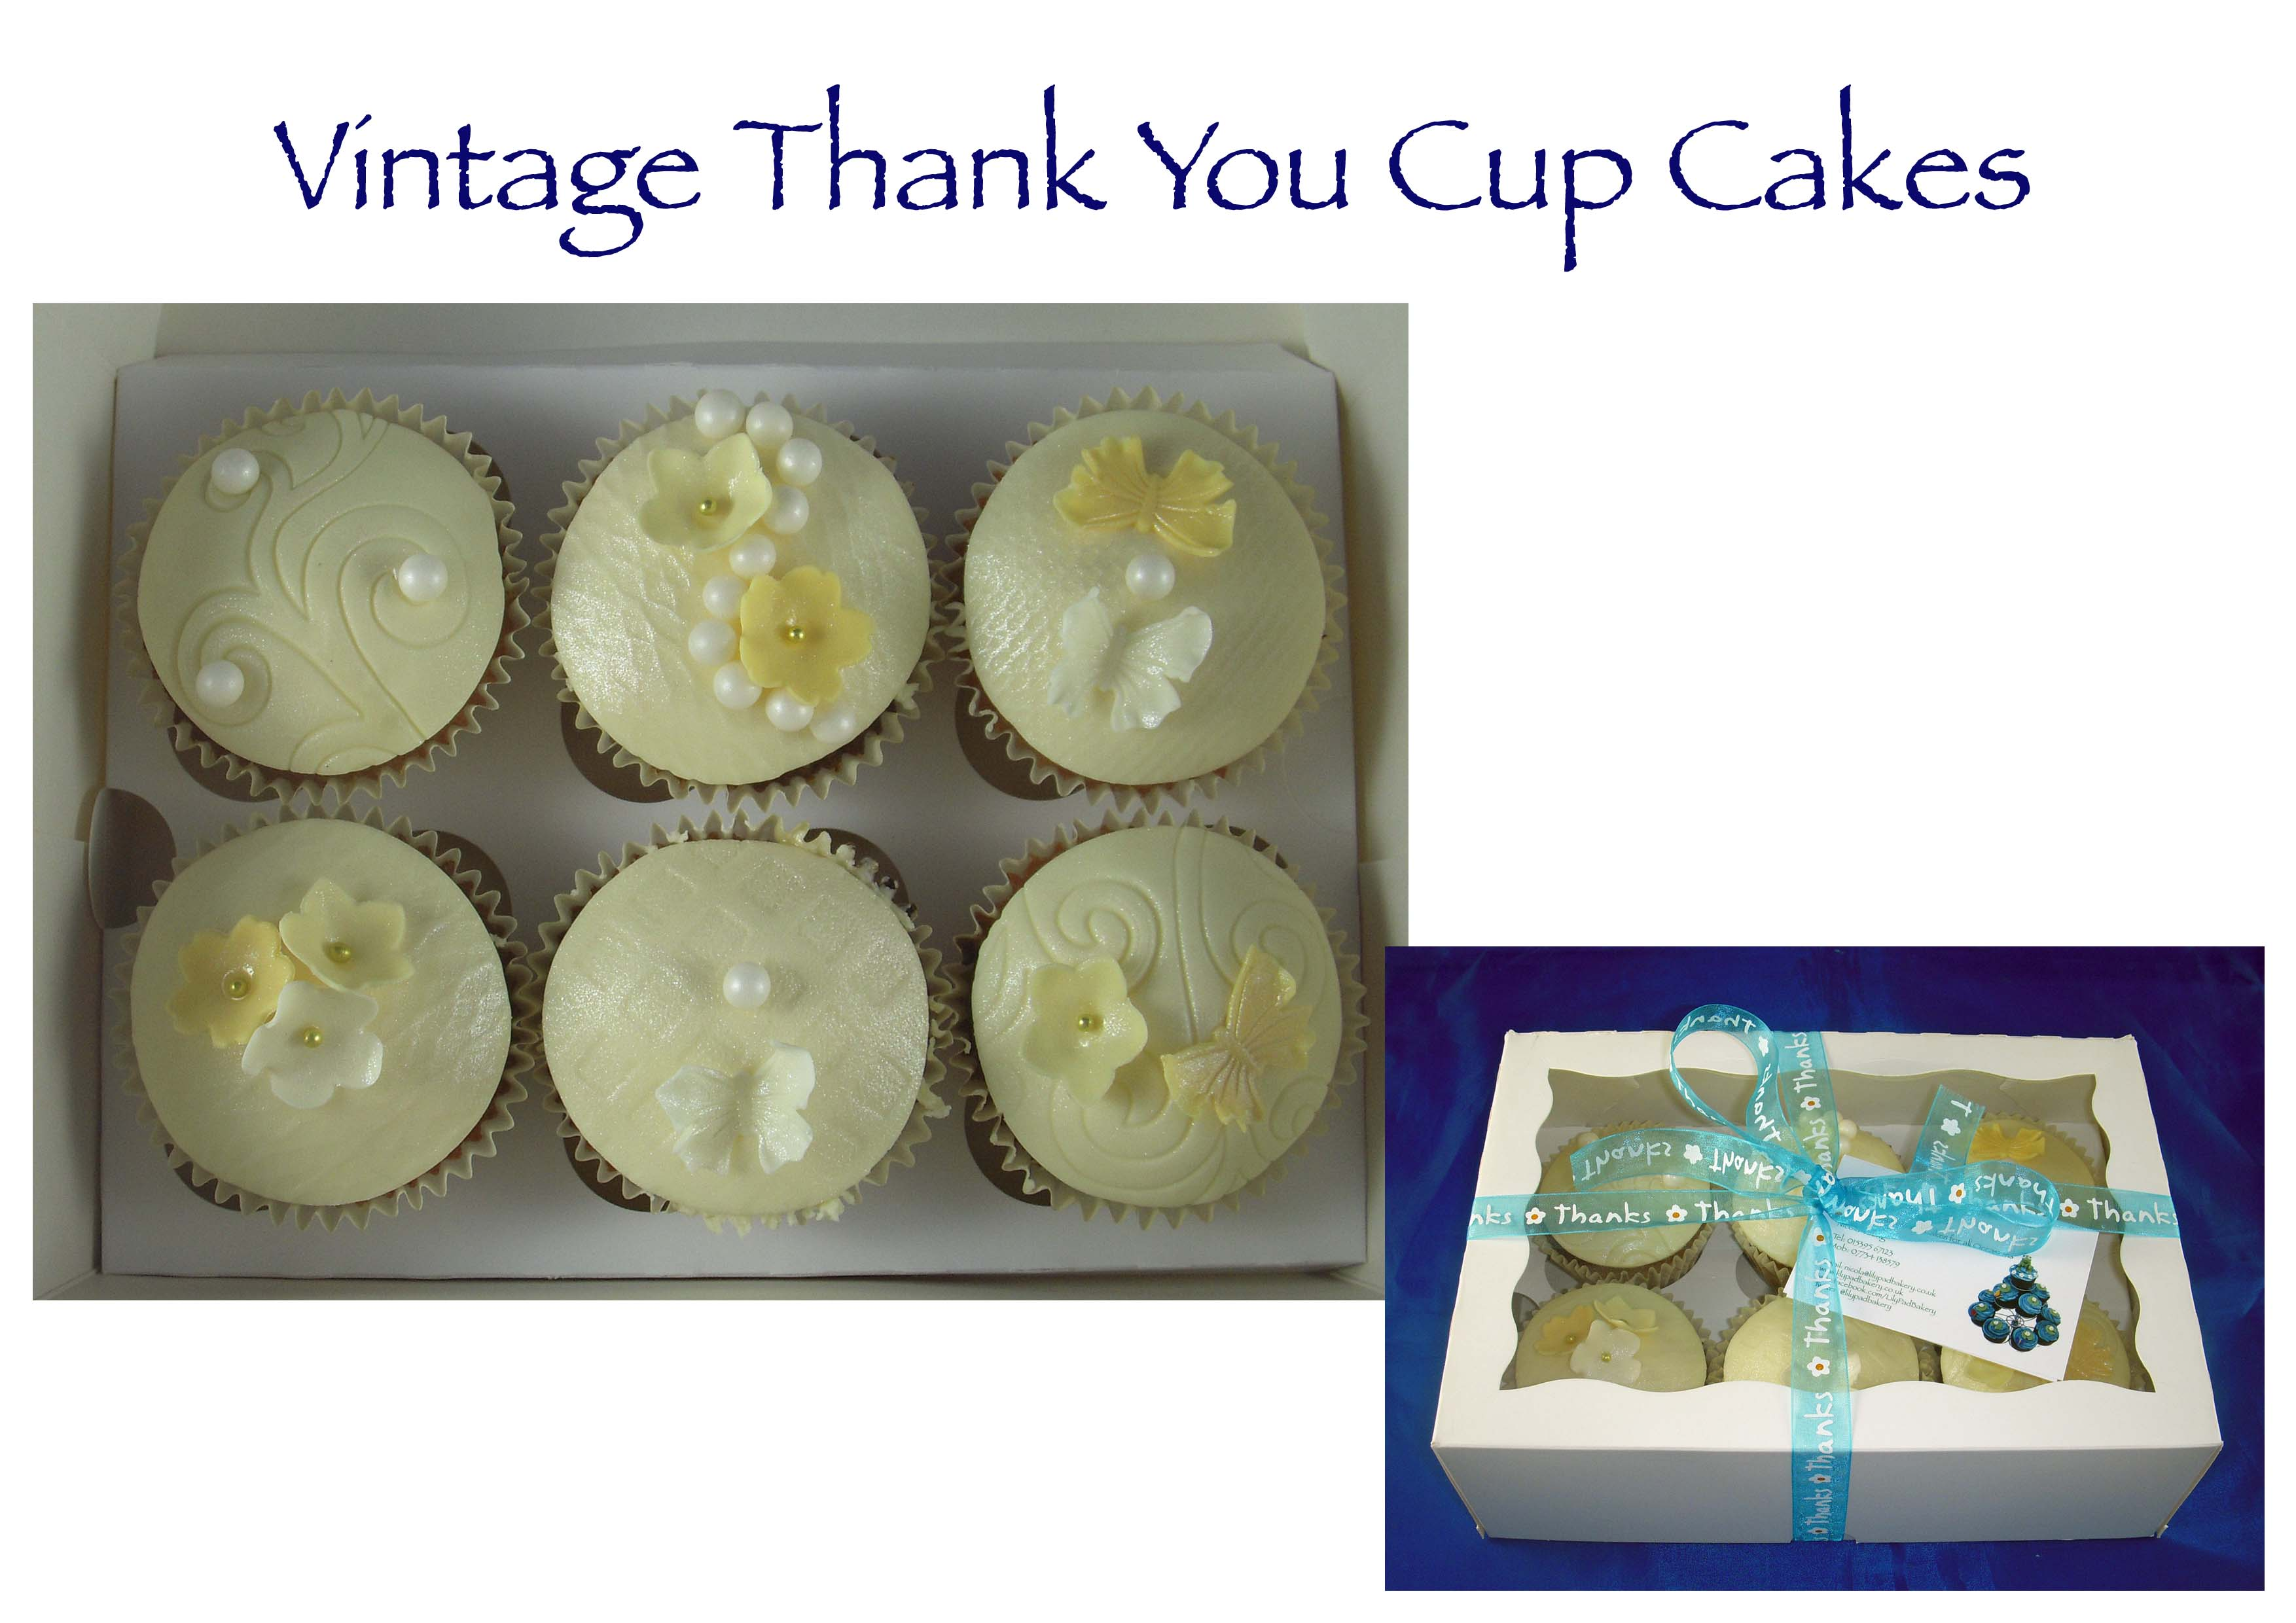 Vintage thank you cupcakes